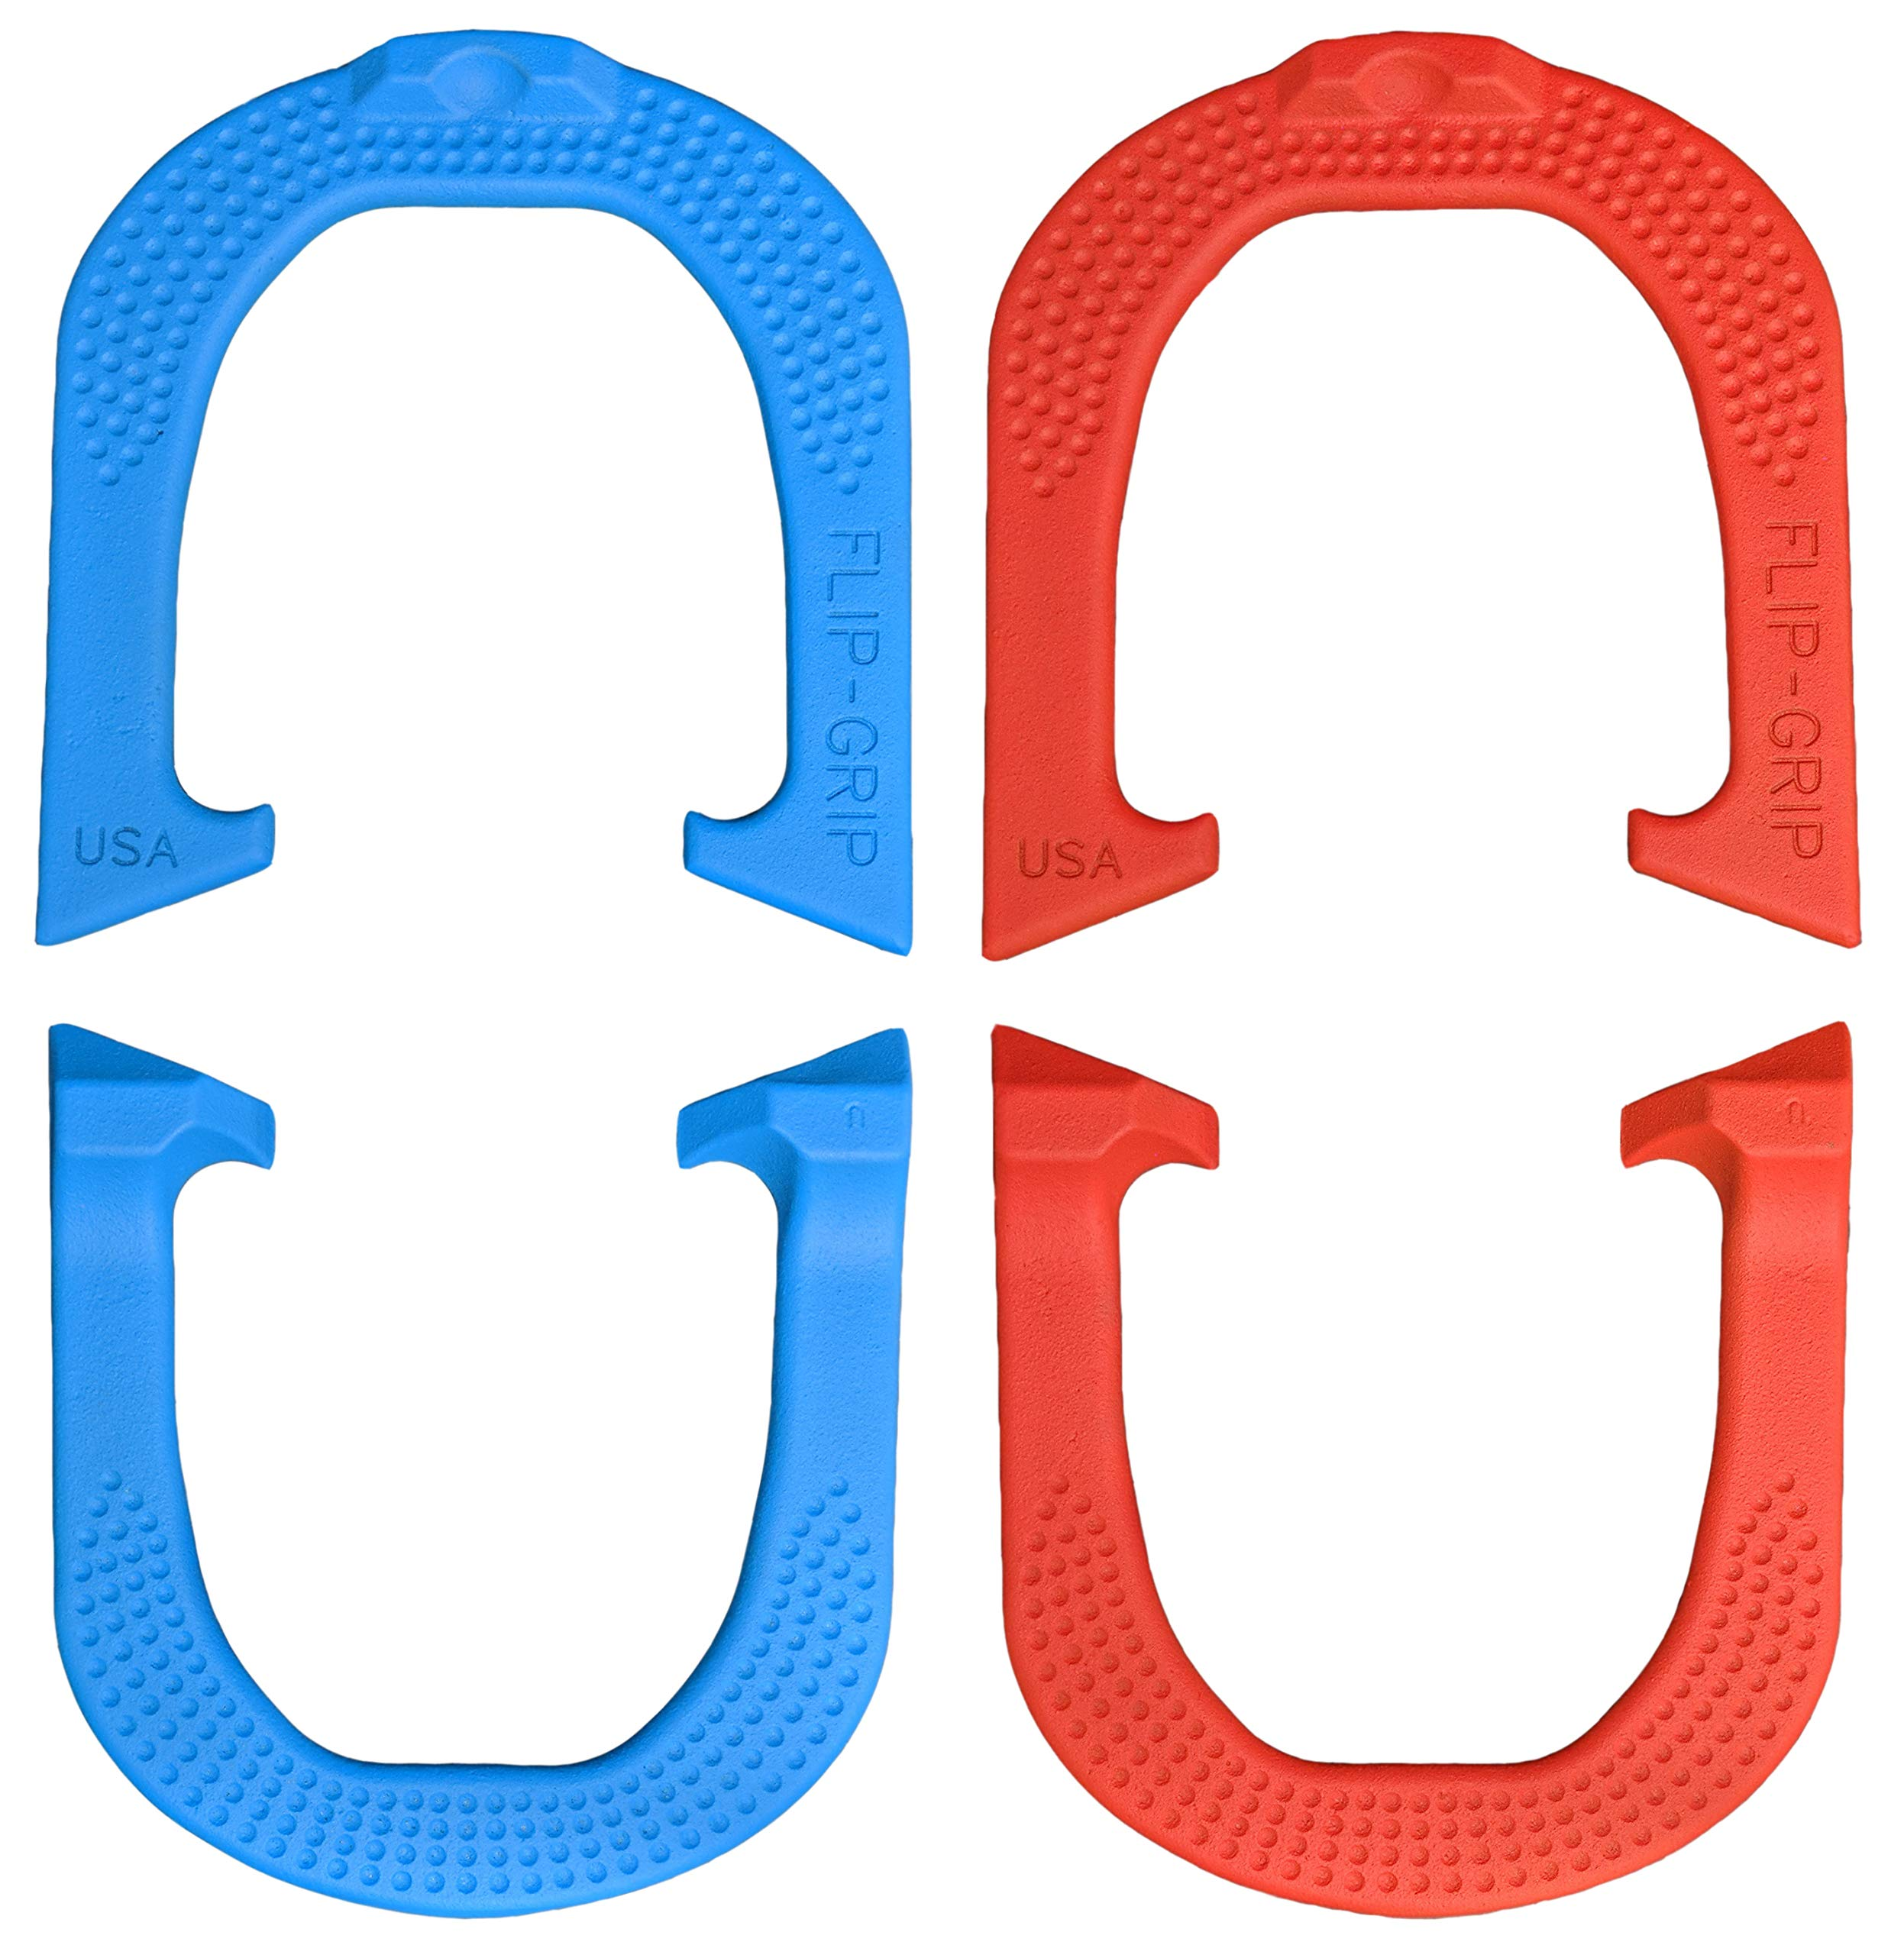 Flip-Grip Professional Pitching Horseshoes- Made in The USA! (Red & Blue- Two Pair Set (4 Shoes)) by Thoroughbred Horseshoes (Image #1)